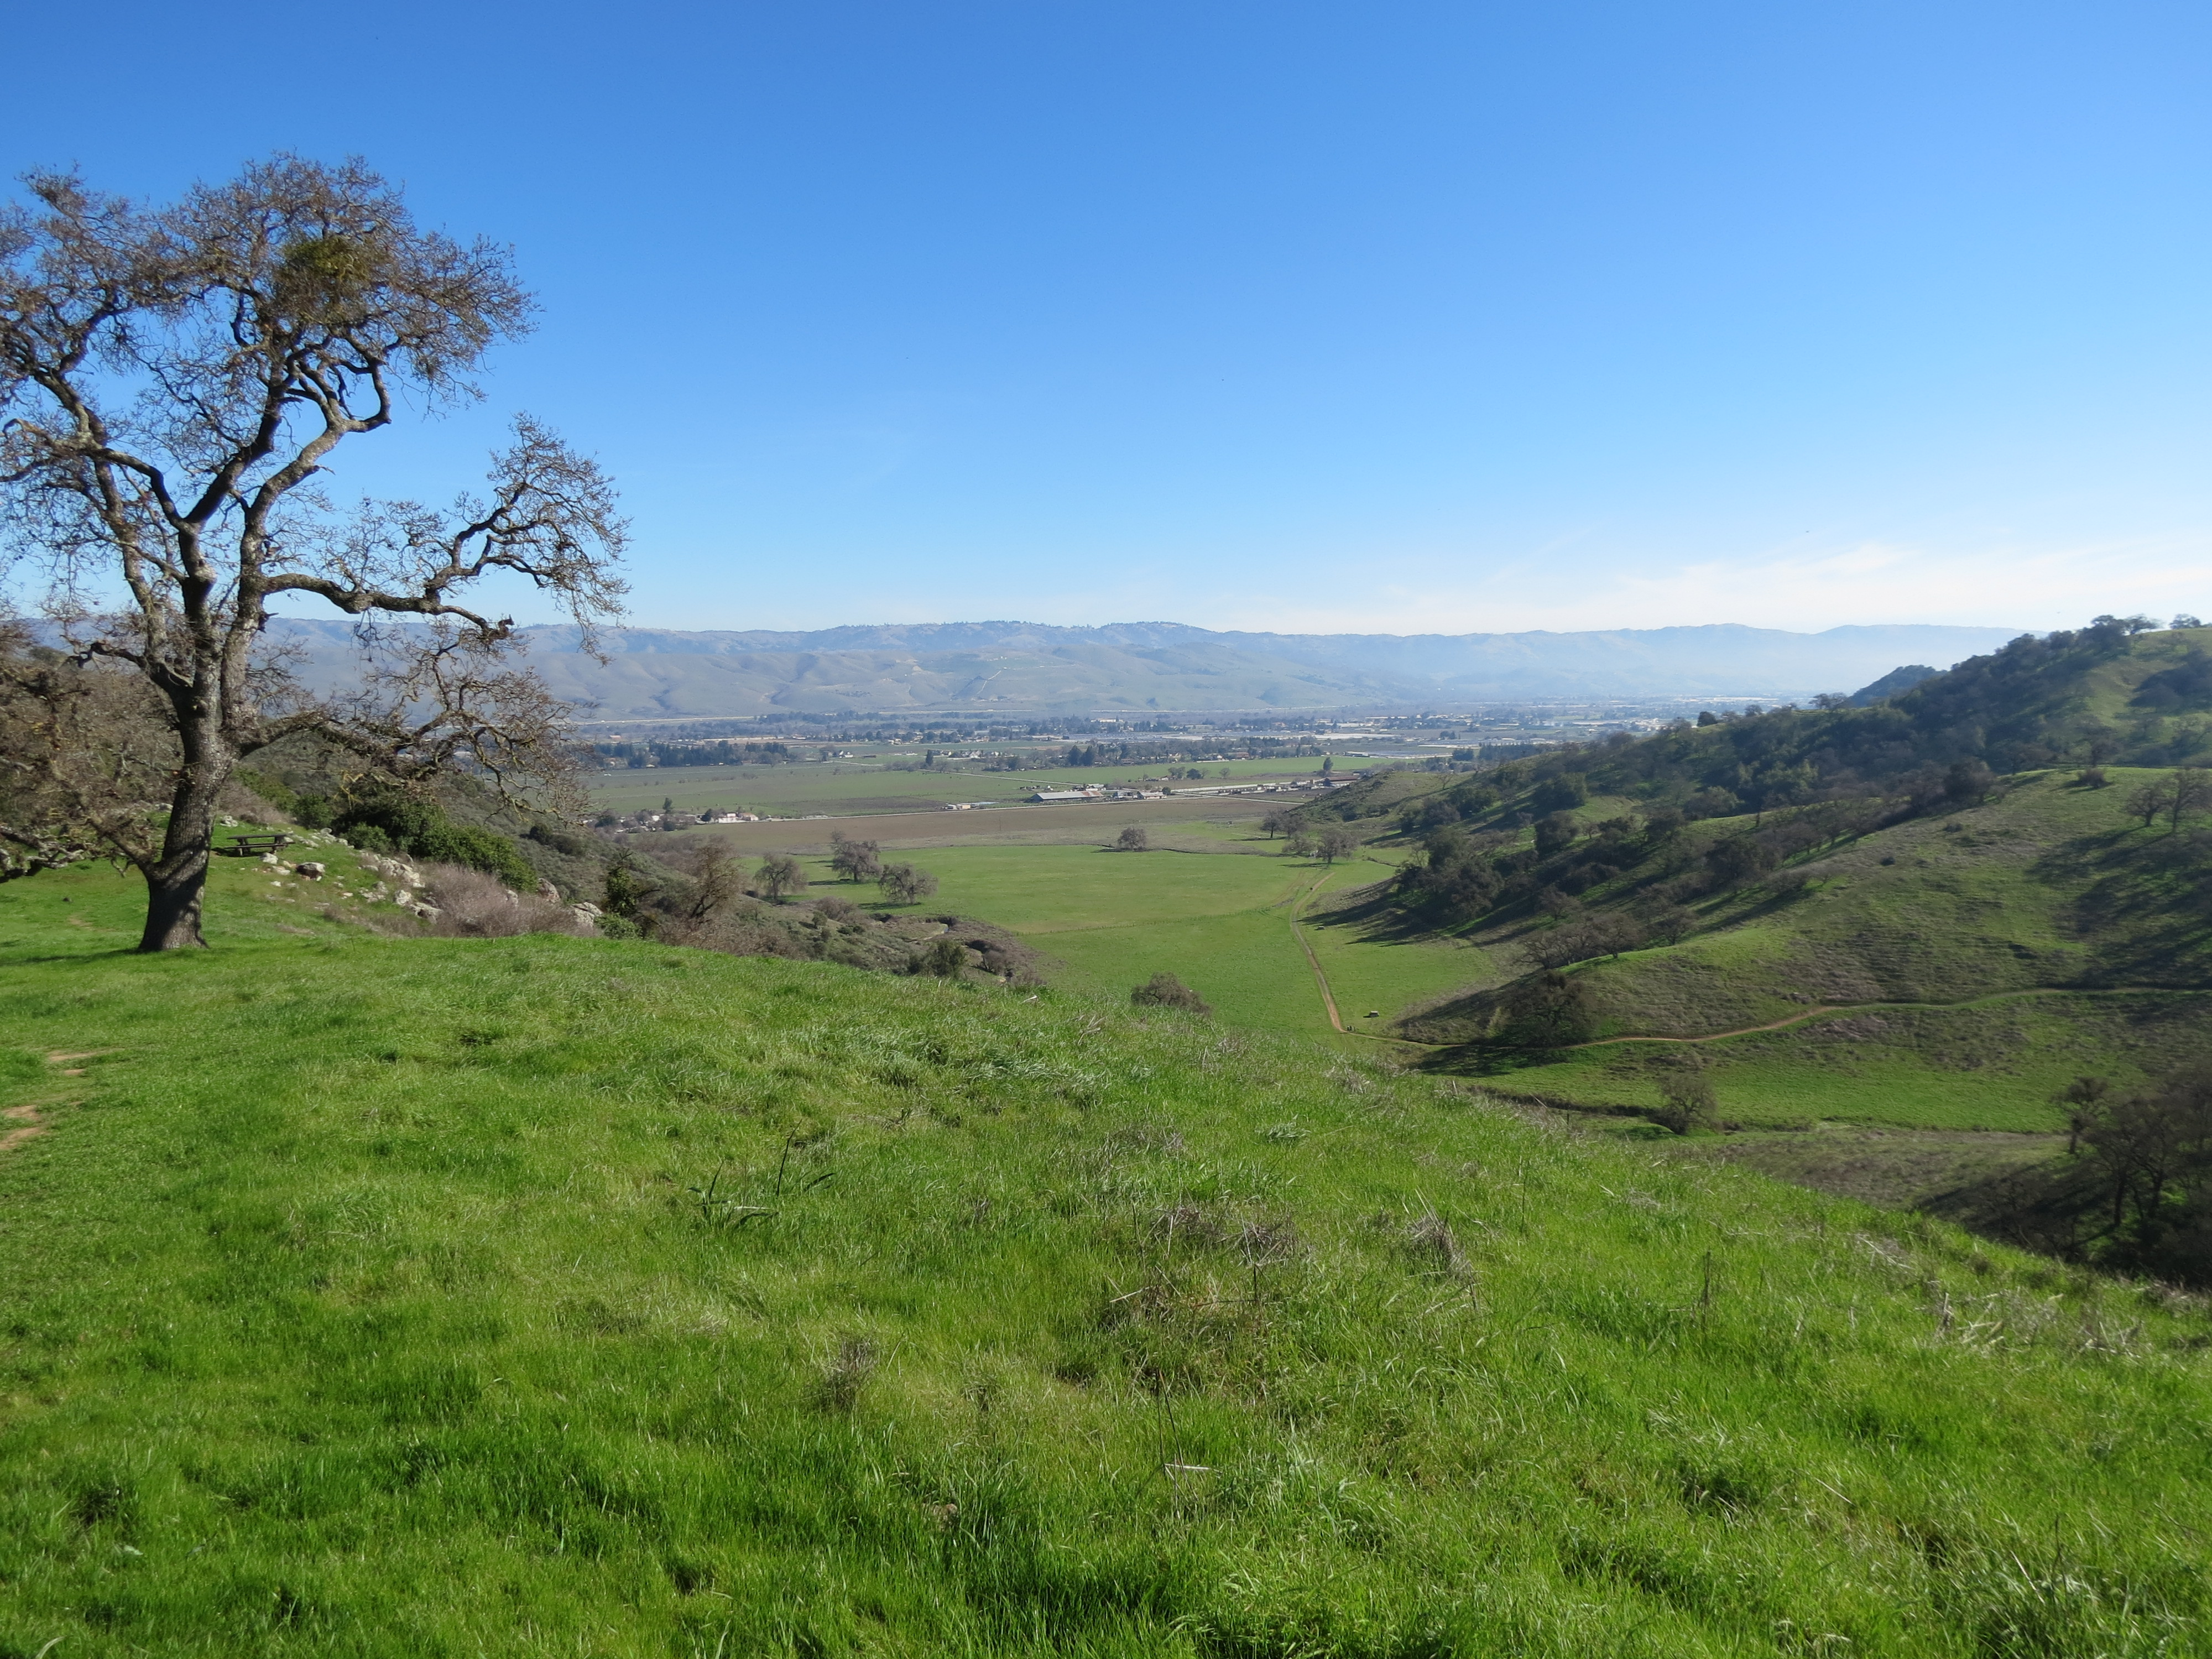 Coyote Valley View